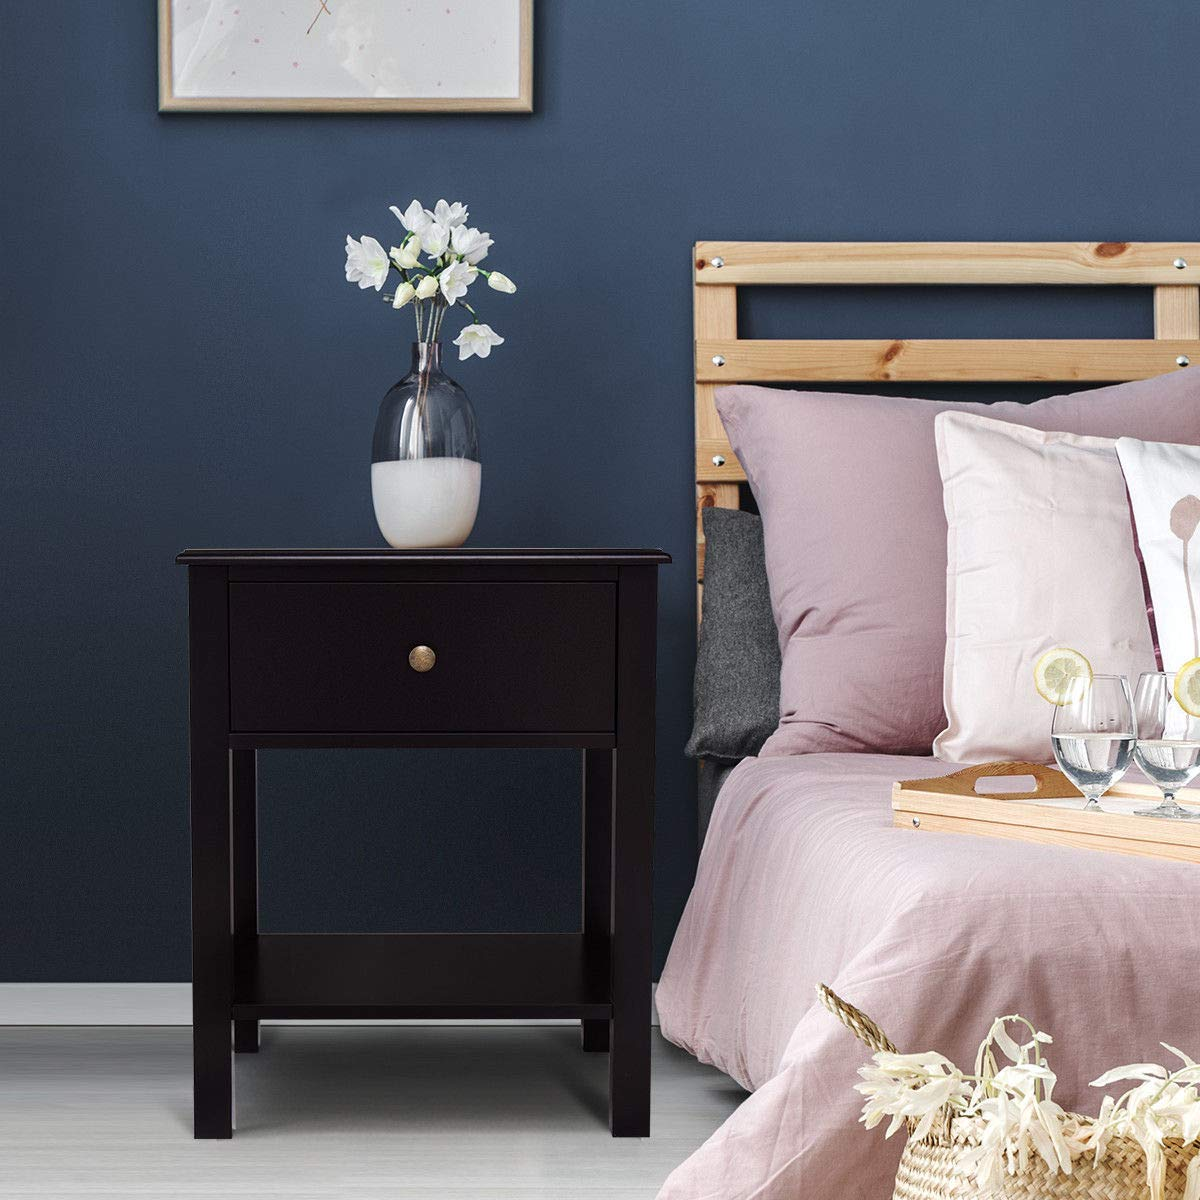 Giantex Nightstand W Drawer and Shelf, Stable Frame Storage Cabinet for Bedroom, Modern Beside Sofa Accent Table, Brown End Table 2